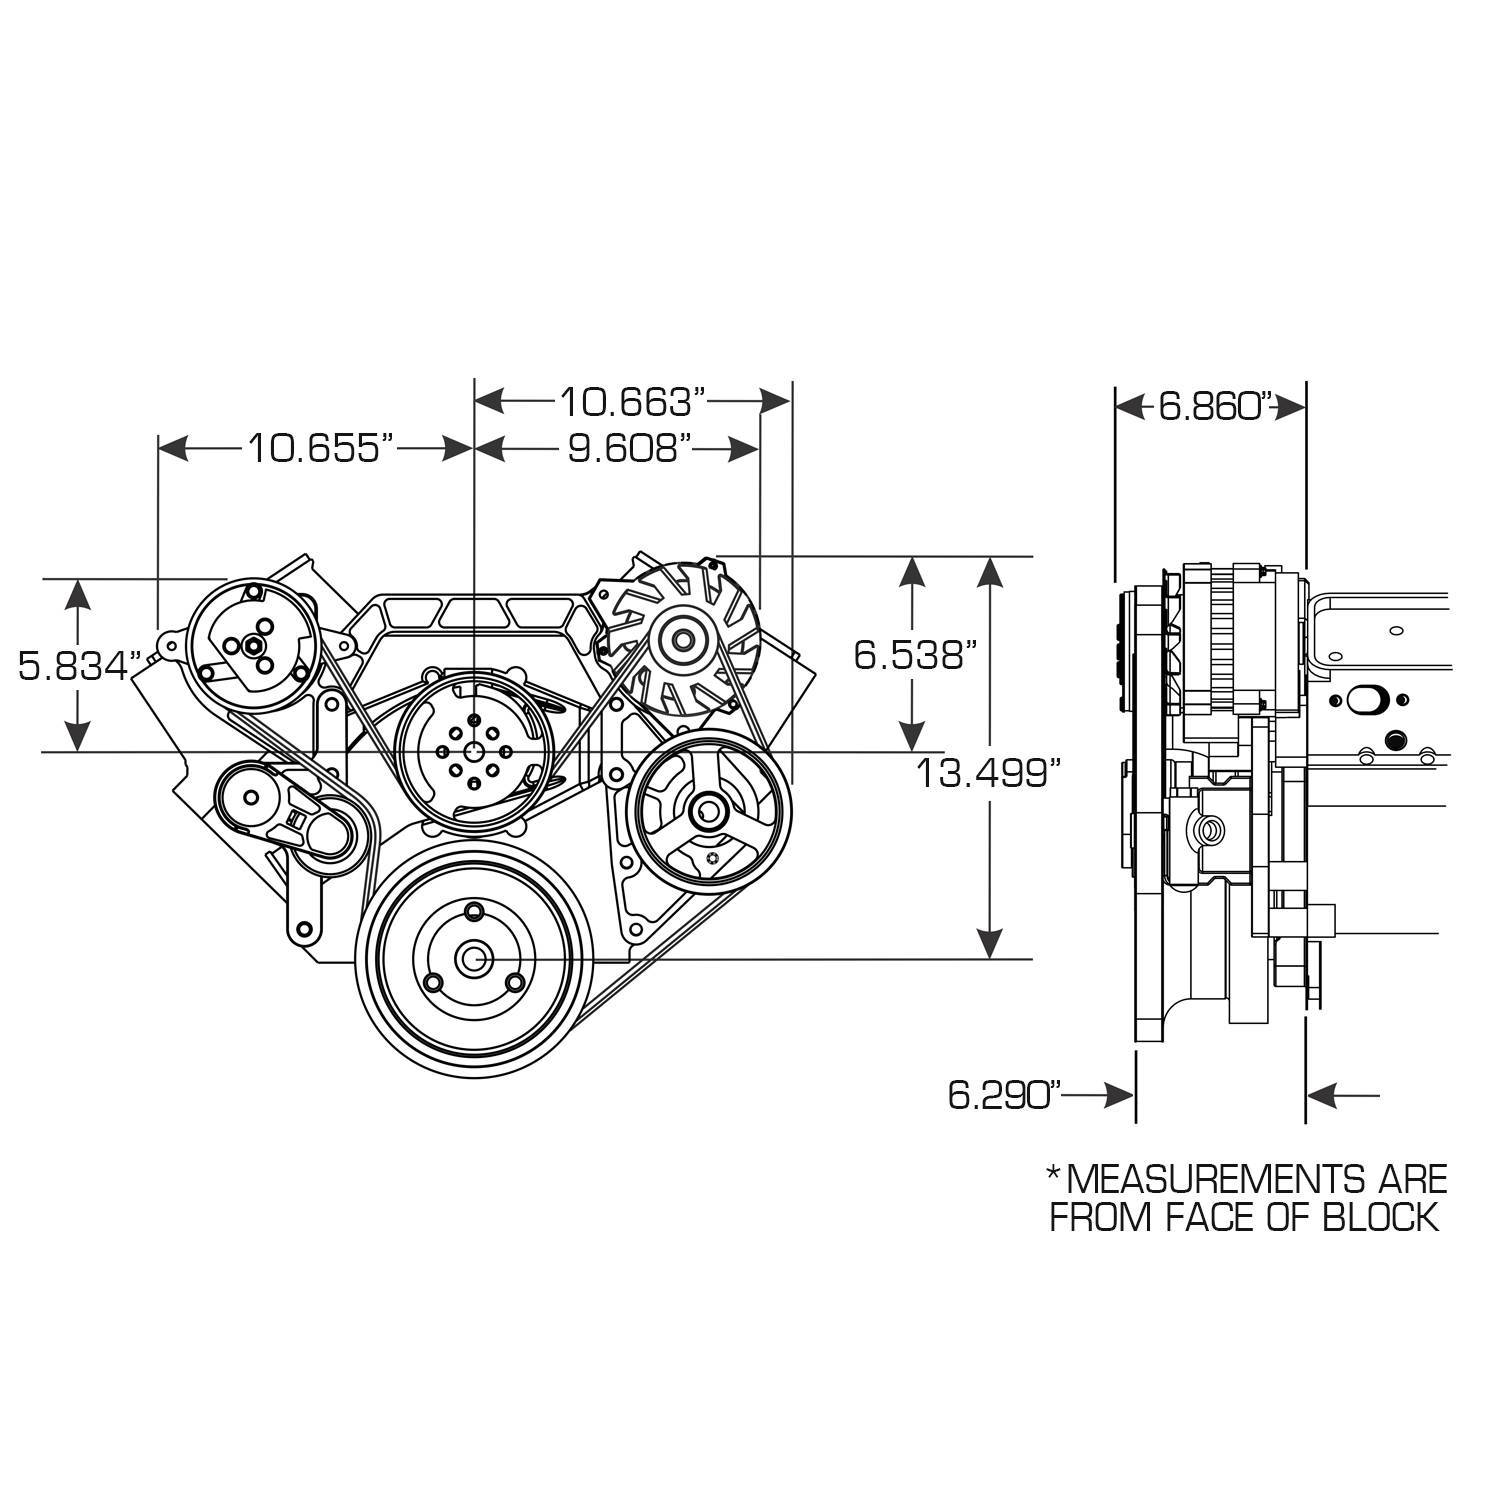 [SCHEMATICS_4LK]  Front Runner™ Drive System BBC Black/Chrome with Alternator, A/C and Power  Steering Vintage Air 172023 | Vintage Air Alternator Wiring Diagram |  | Pace Performance